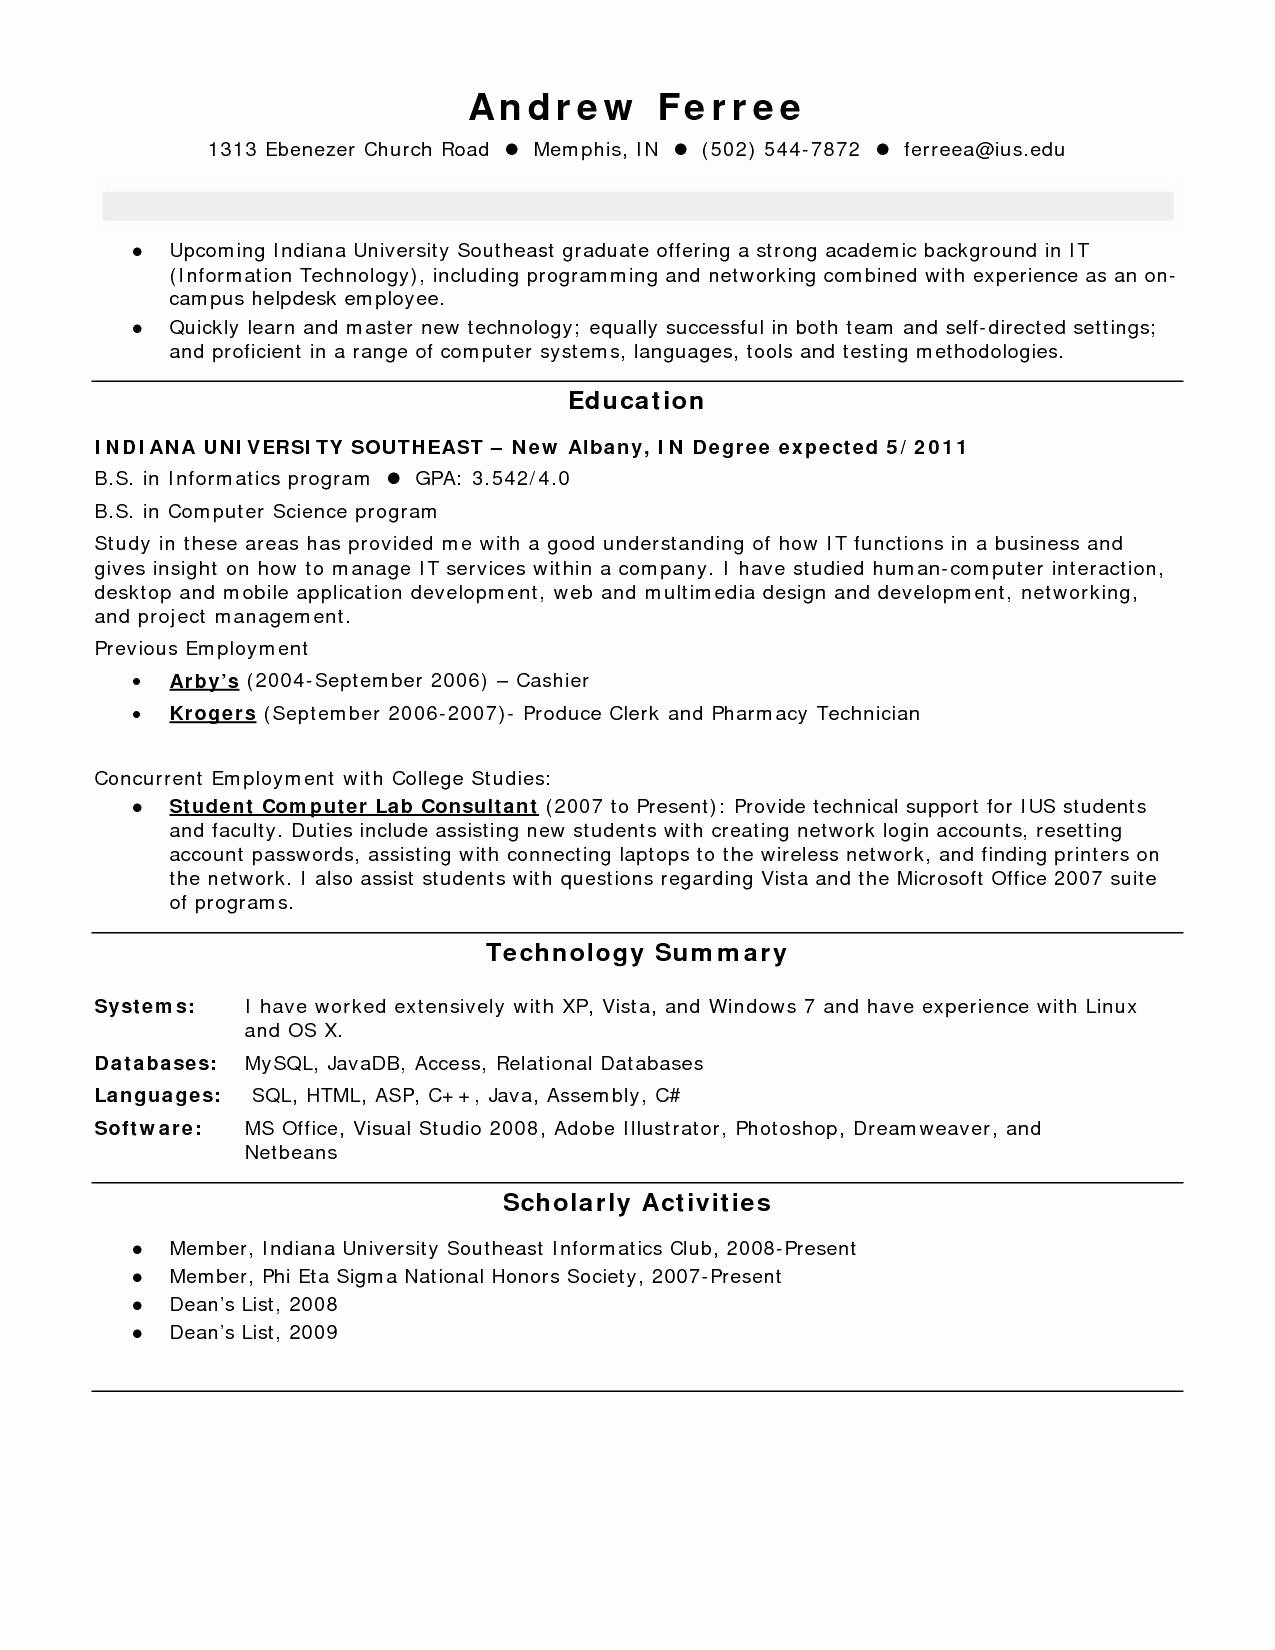 Honors On Resume Fresh 10 How to List Honor society Resume